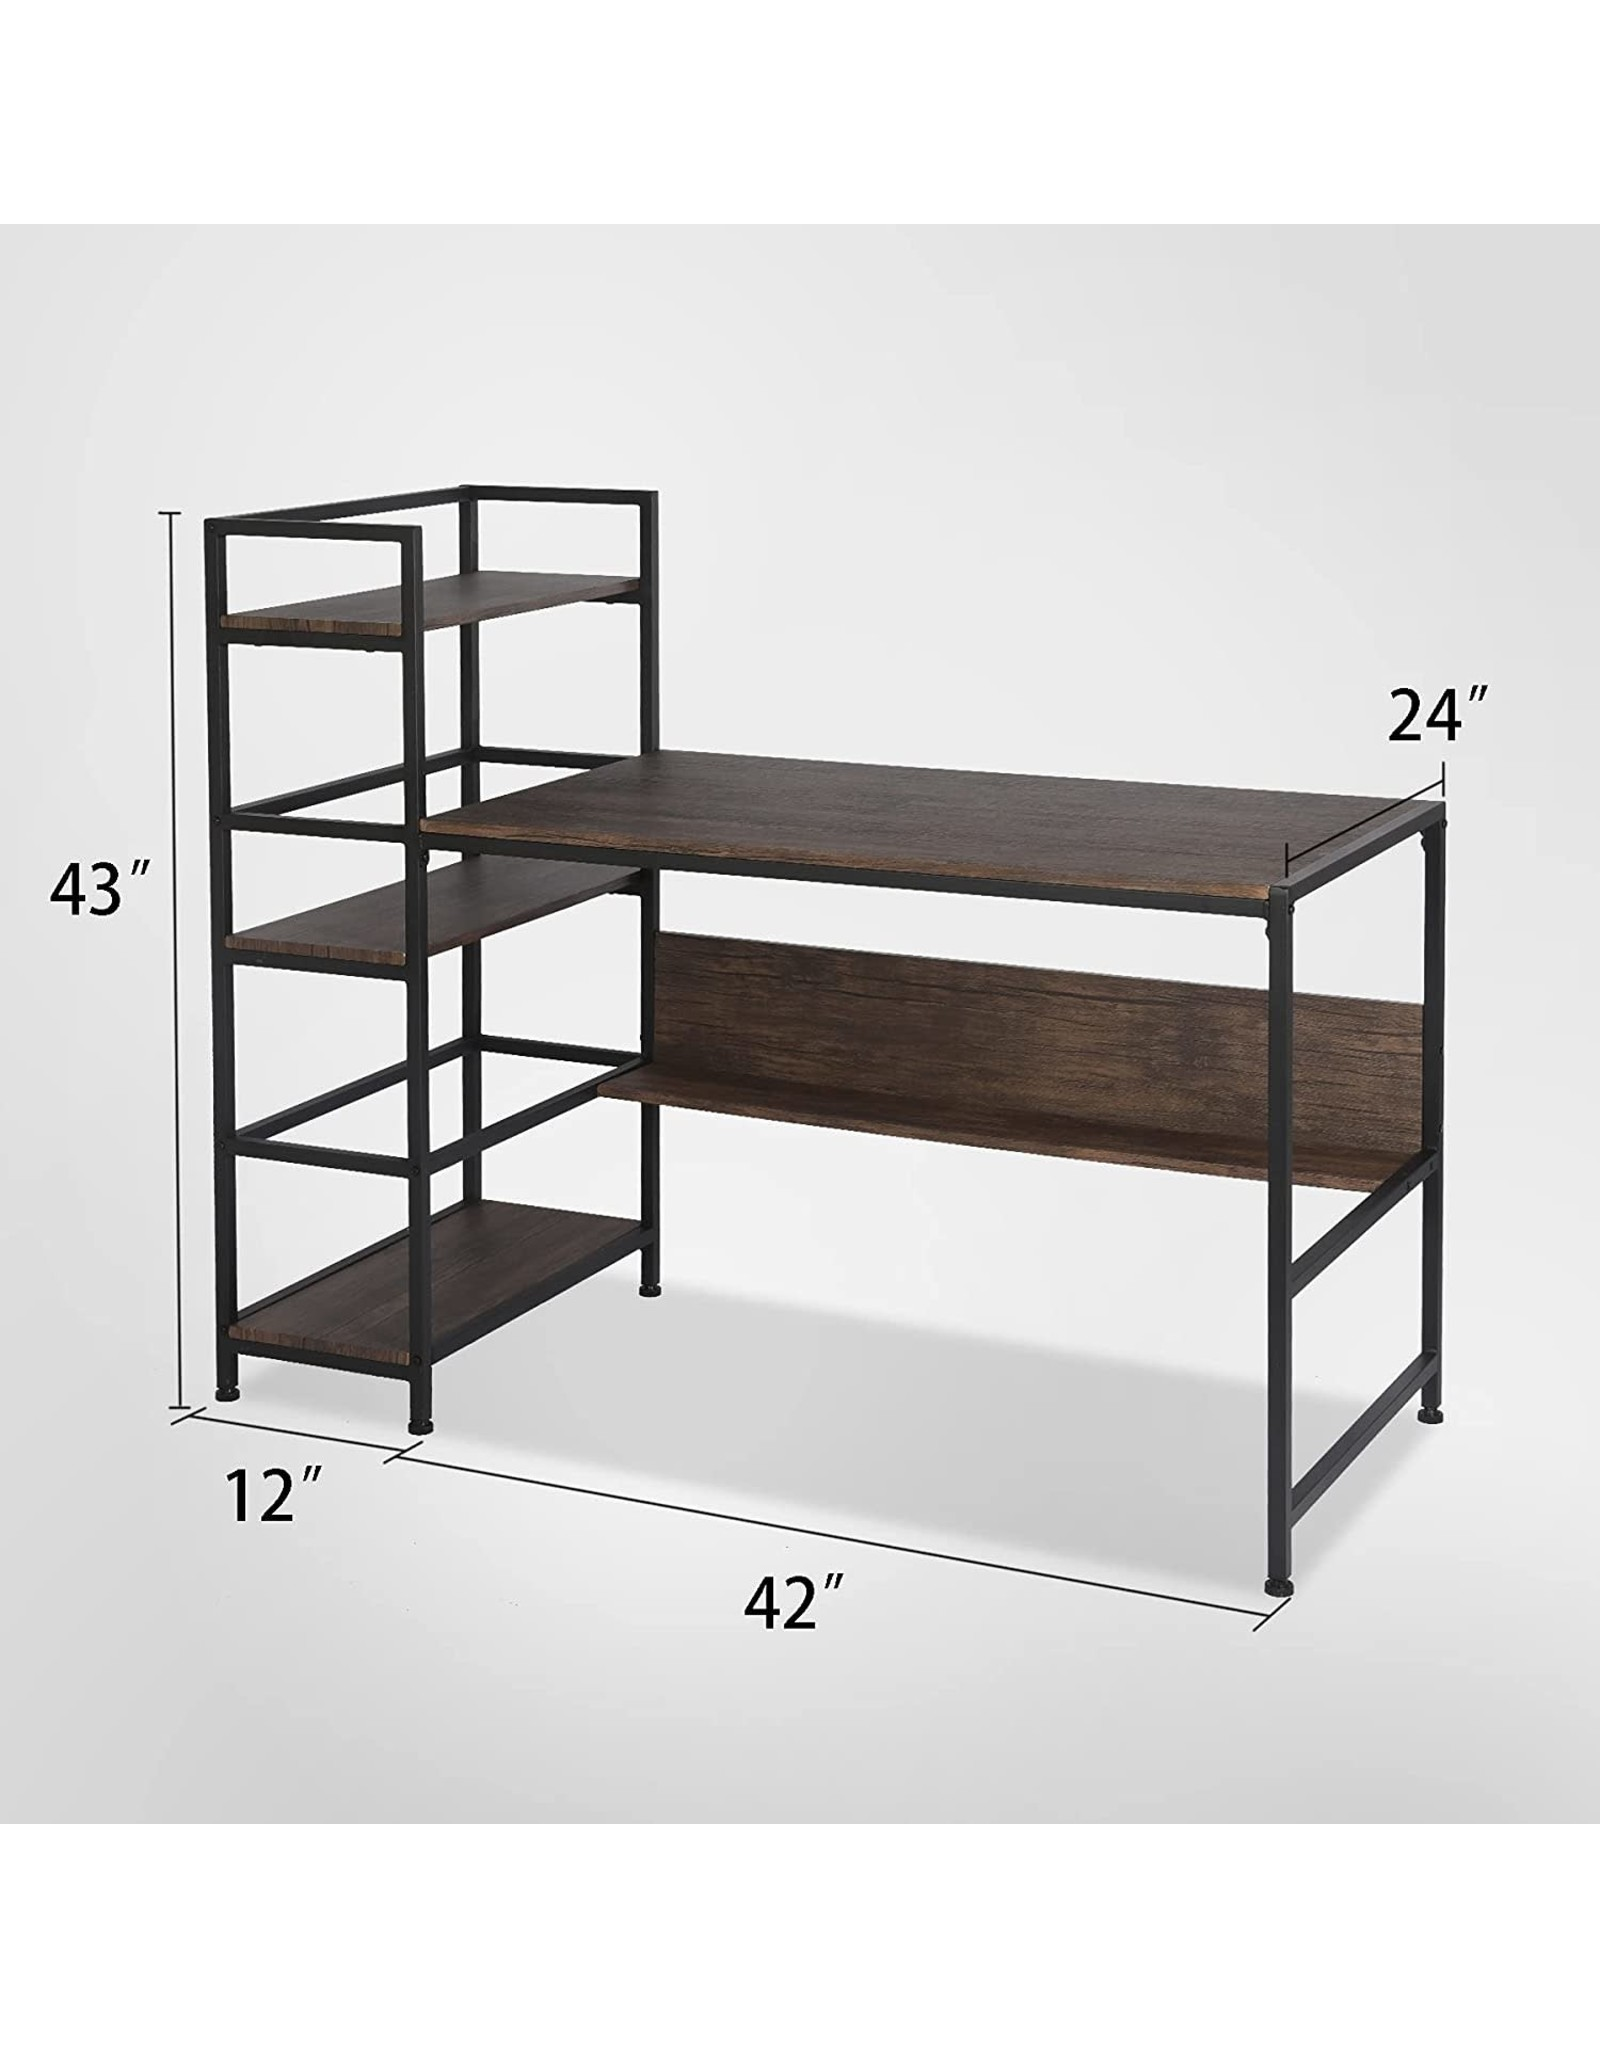 FHY FHY Computer Desk 54 inch with 3 Storage Shelves for Home Office,with Wooden Bookshelf for Study Writing Table,Modern Simple Style, Rustic Oak